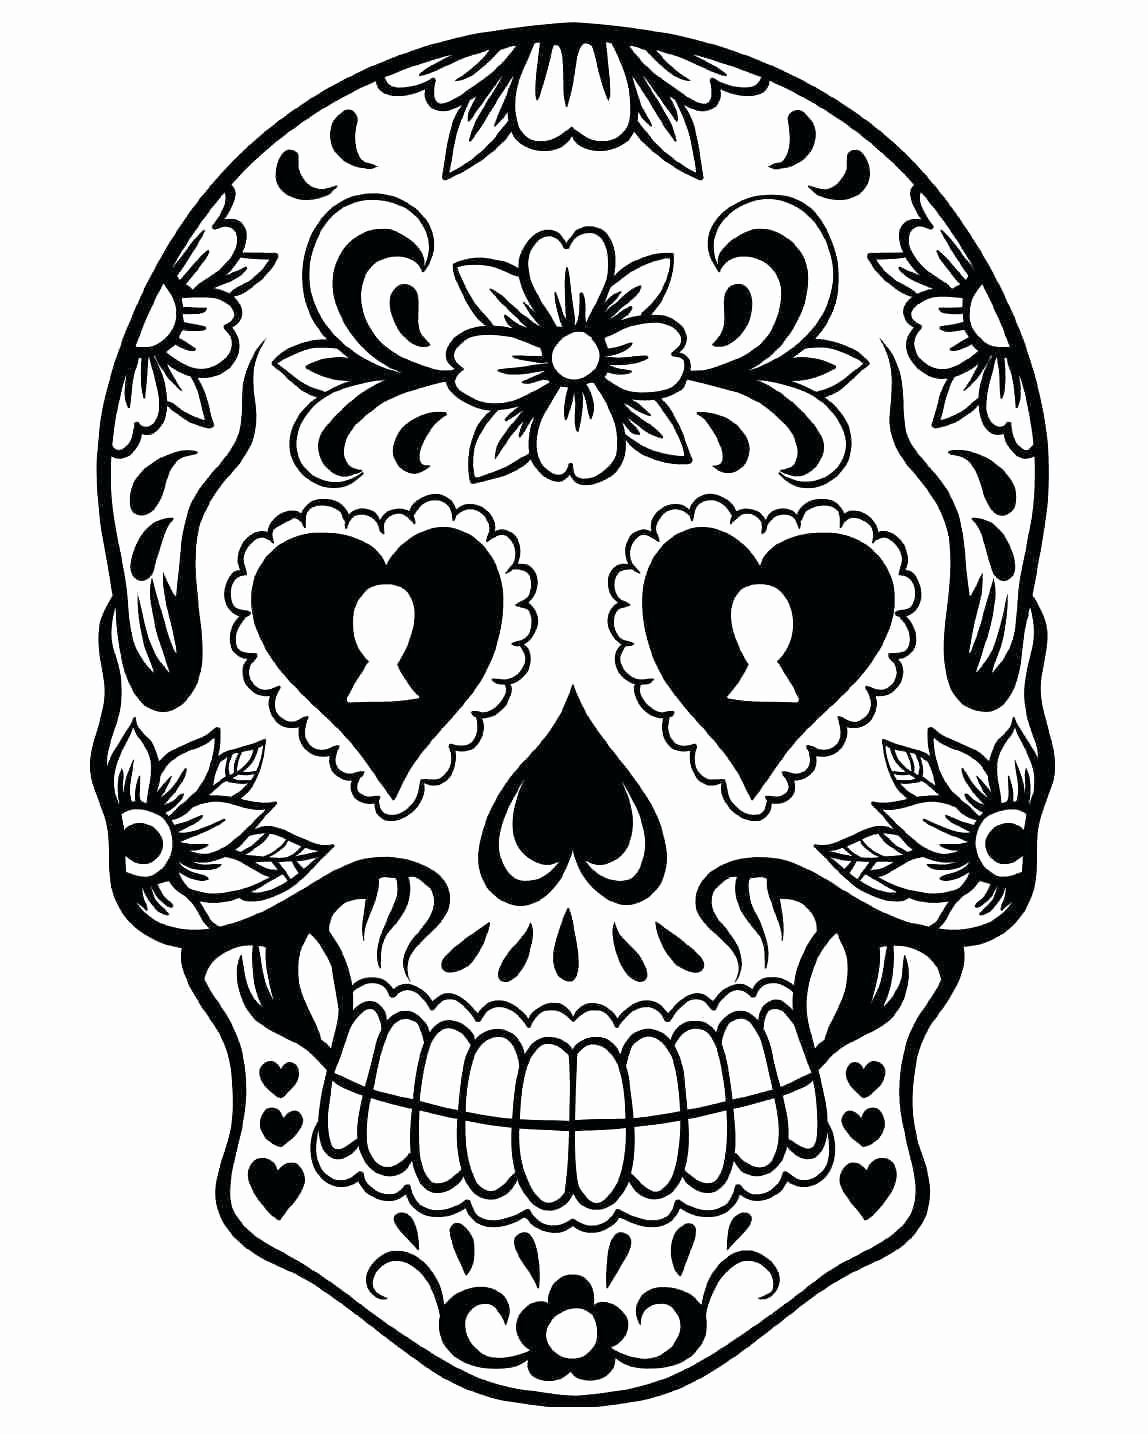 Coloring Pages : Printable Dia Los Muertosoloring Pages Day Of The - Free Printable Sugar Skull Day Of The Dead Mask